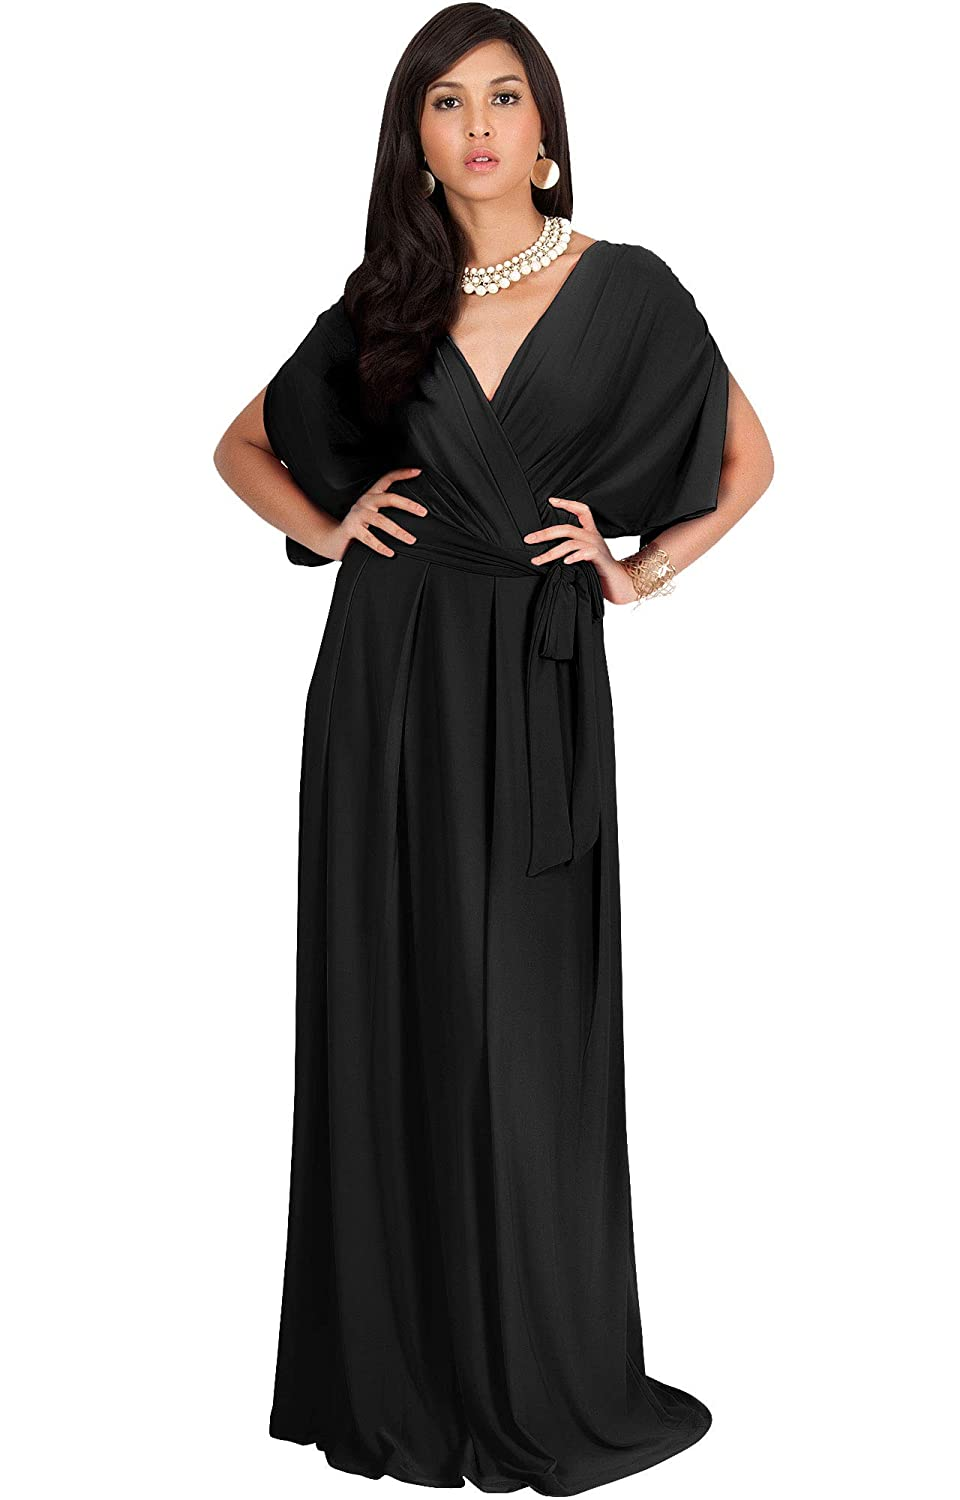 7aeb148604 KOH KOH Formal Short Sleeve Cocktail Flowy V-Neck Gown at Amazon Women s  Clothing store